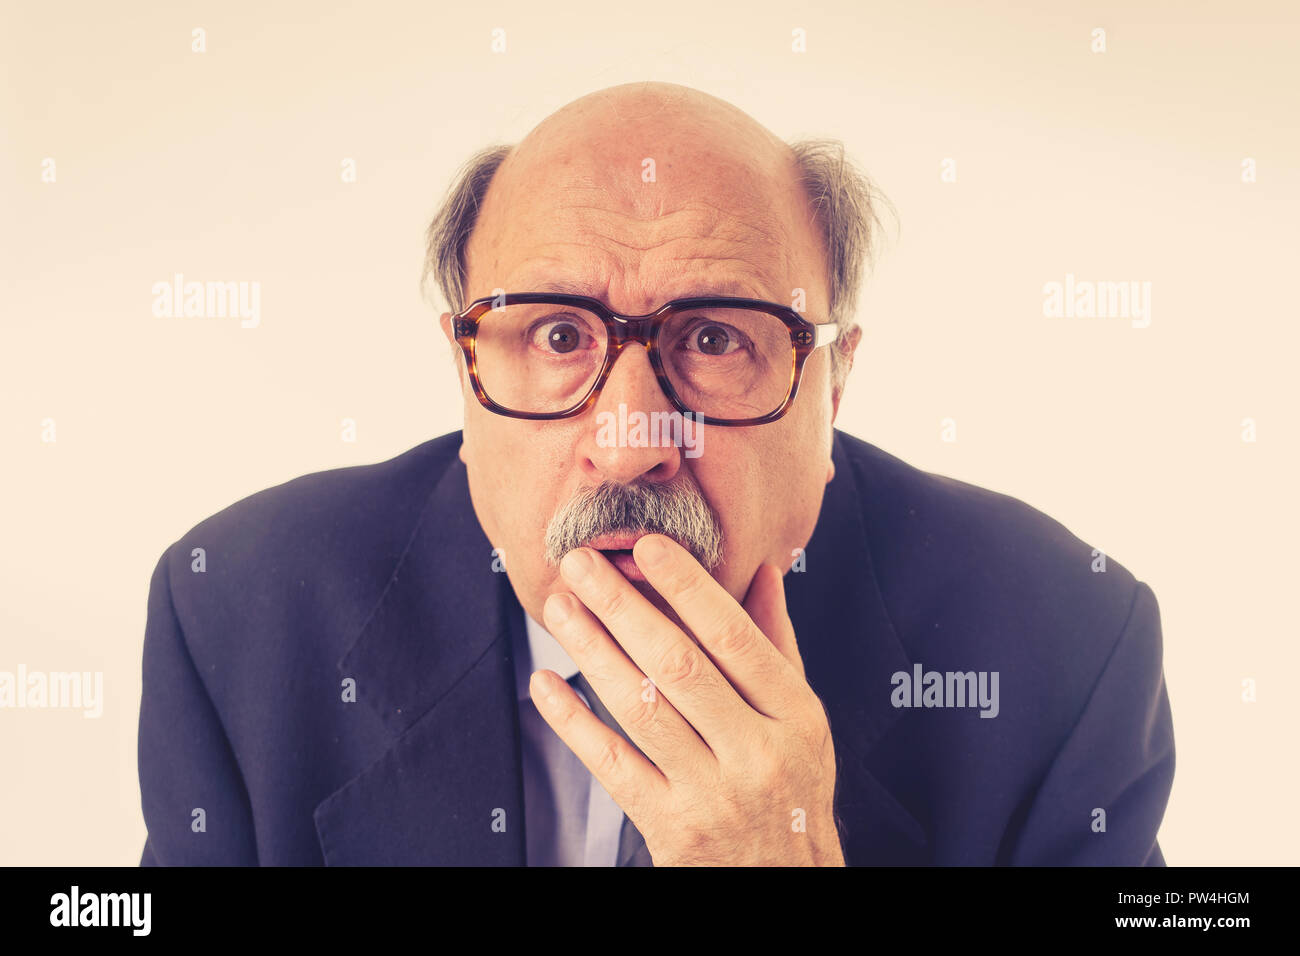 Portrait of a 60s senior man in shock with a scared expression on his face making frightened gestures in human emotions feelings facial expression and - Stock Image